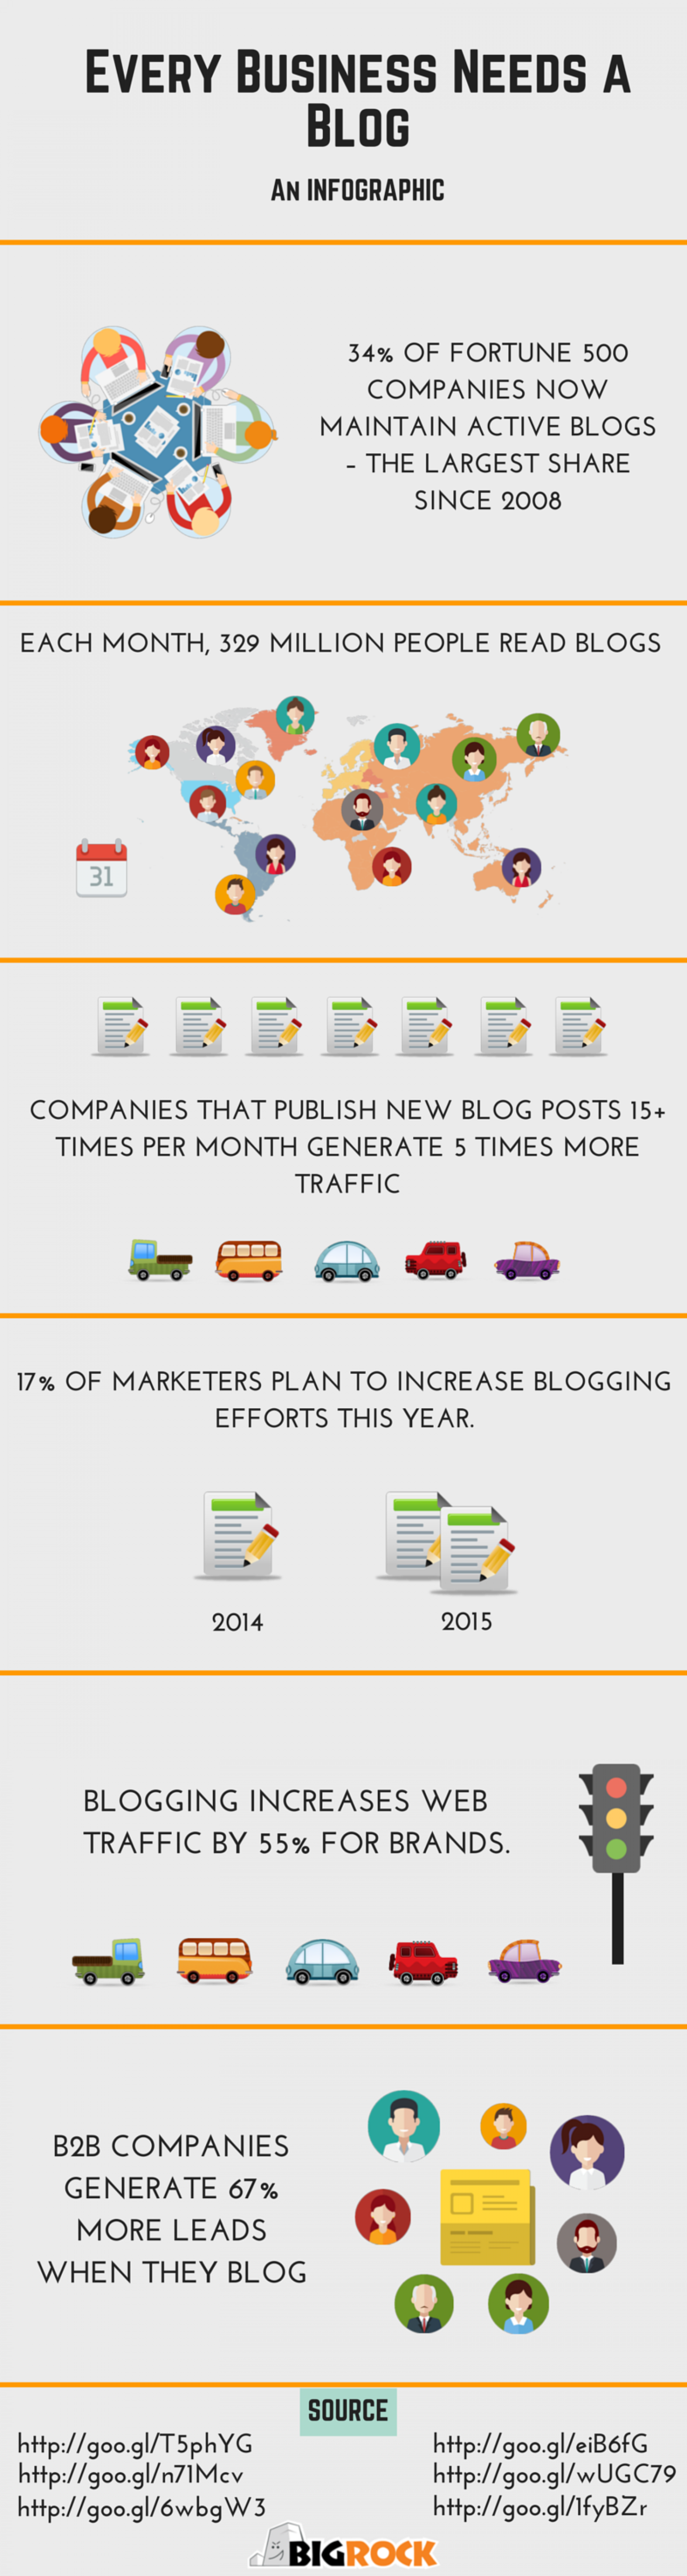 Every Business Need a Blog  Infographic